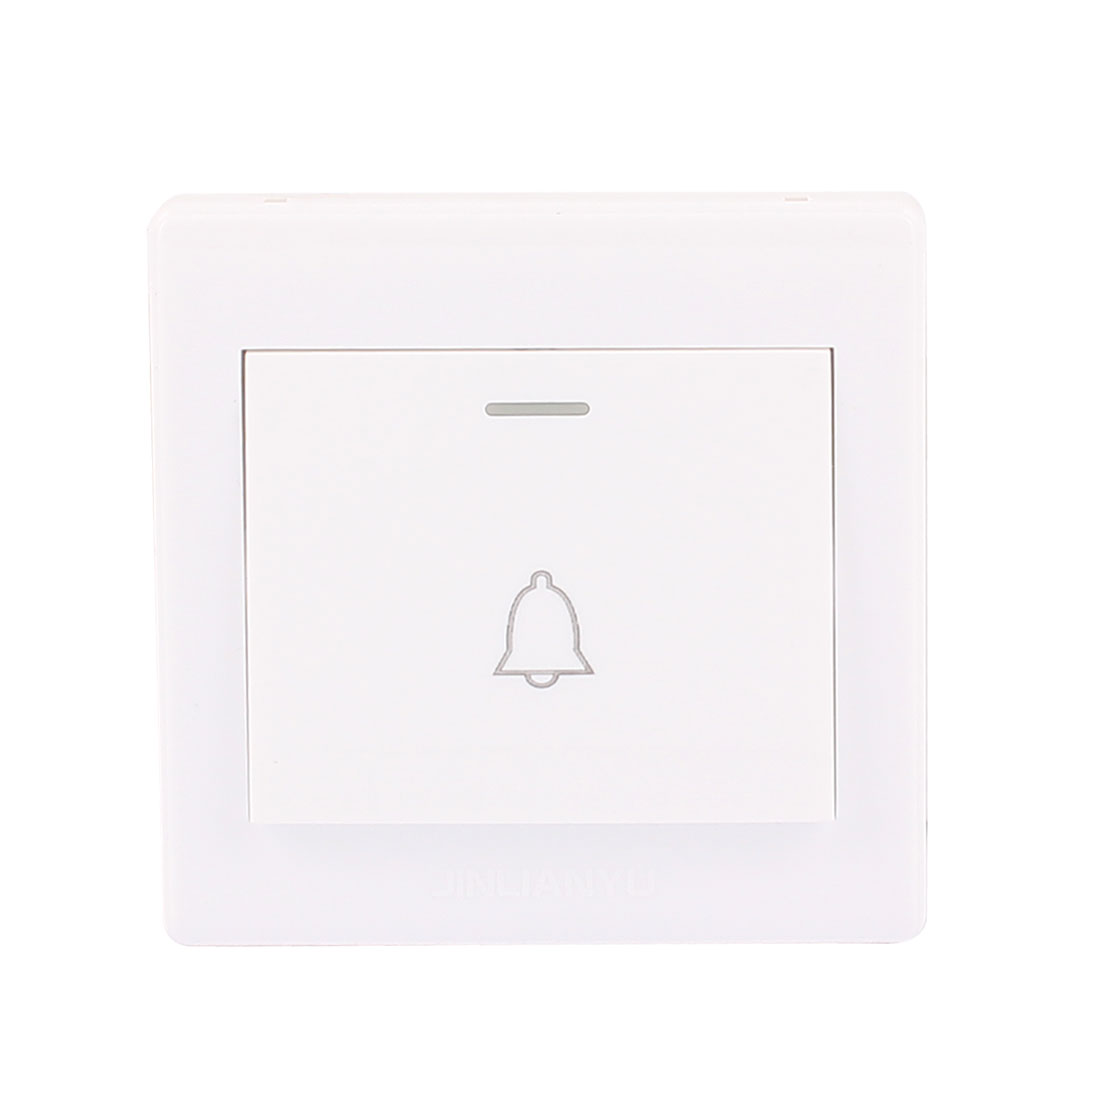 AC 250V 10A Home Office Momentary Push Release Wall Mount Doorbell Switch Plate